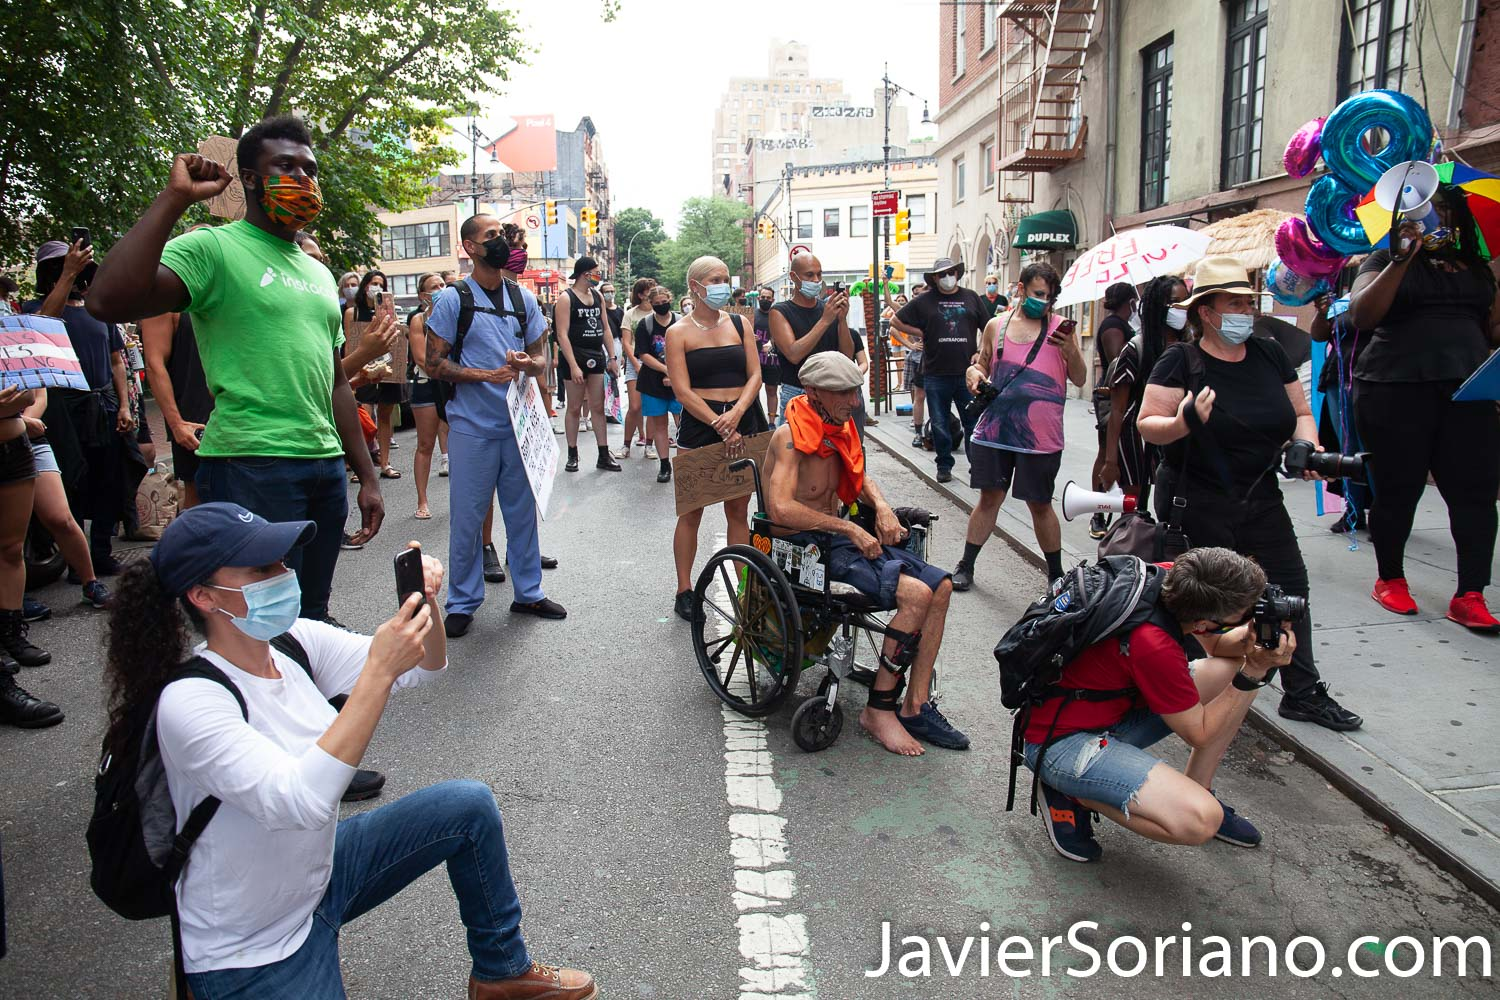 """Thursday, July 30, 2020. Manhattan, New York City - Rally and March: """"Liberation for Black Queer and Trans people.""""  Protesters had a rally in front of The Stonewall Inn. After the rally, they marched to Foley Square Park.  A Trans woman  said sometimes Trans women and Trans men are killed by police and sometimes they are killed by their own community. Activists said all Black Lives Matter.  Joel rivera said, the rally and march was to honor and acknowledge Black Queer and Trans people.  The male protester on the wheelchair harassed a female photographer, a male photographer and me. Three women asked him to stop.  Photo by Javier Soriano/www.JavierSoriano.com"""